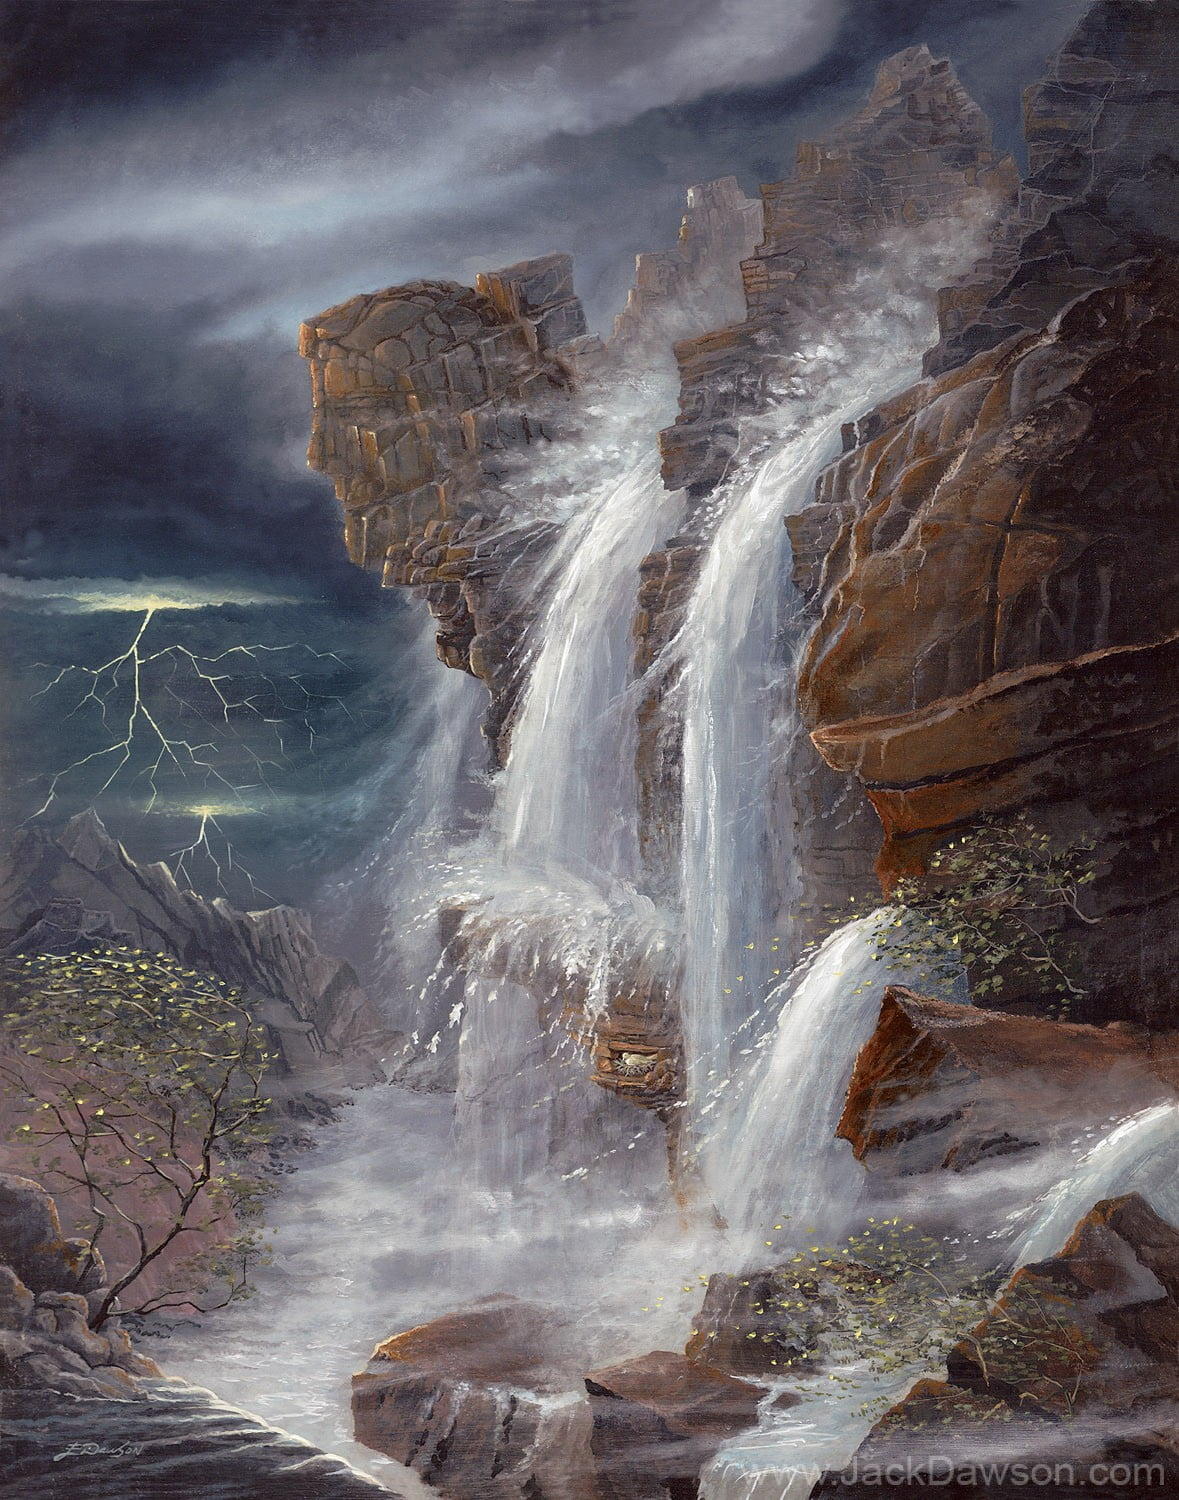 Peace in the Midst of the Storm by Jack E. Dawson